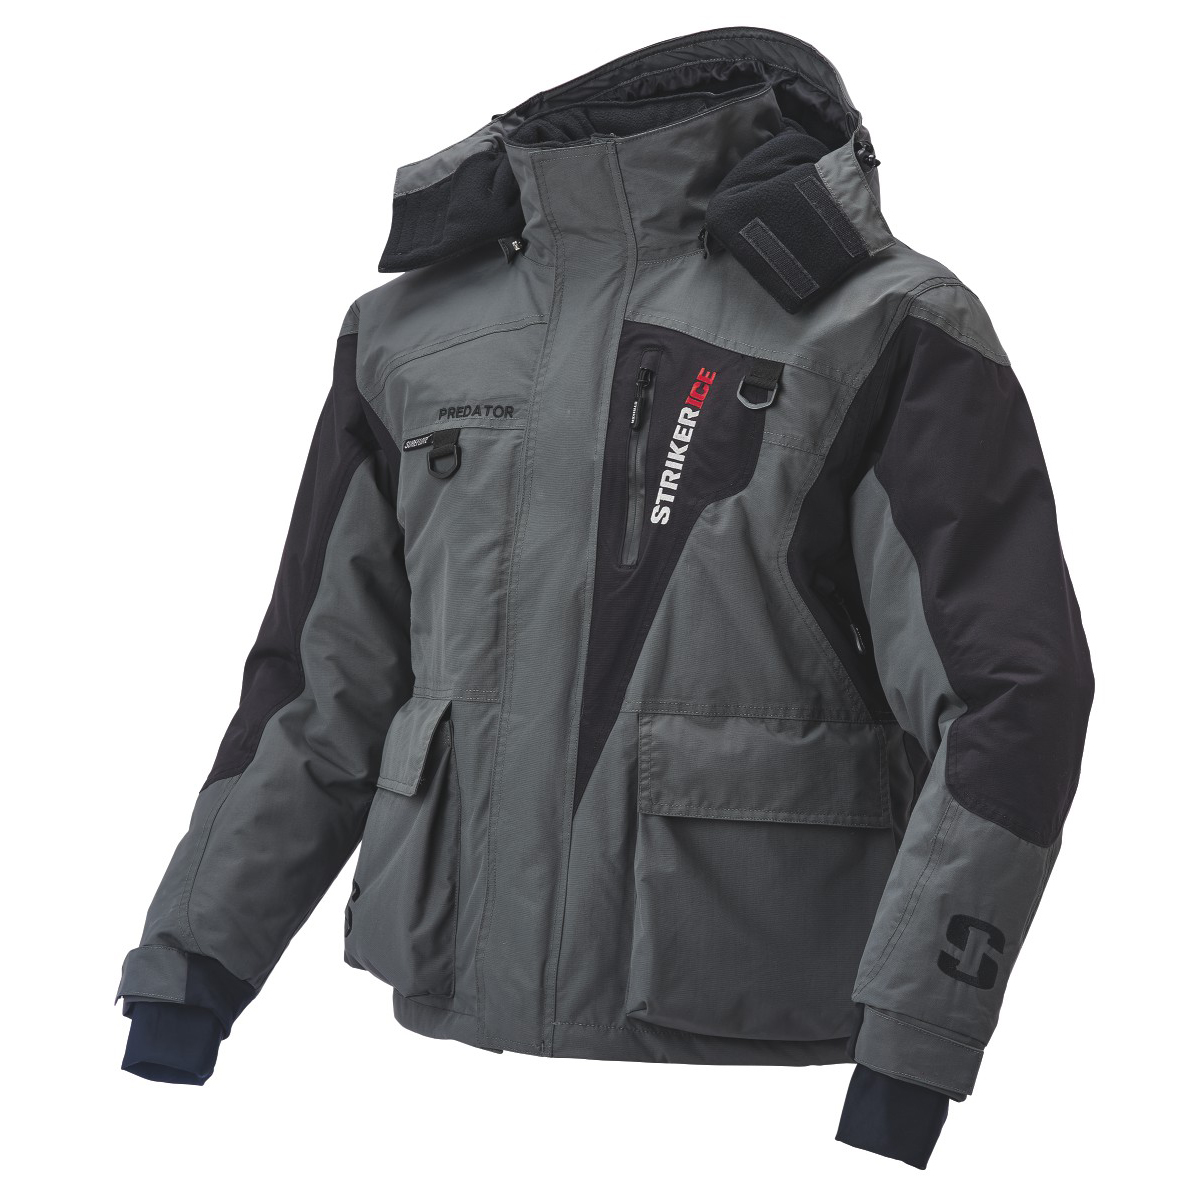 Striker Men's Predator Jacket